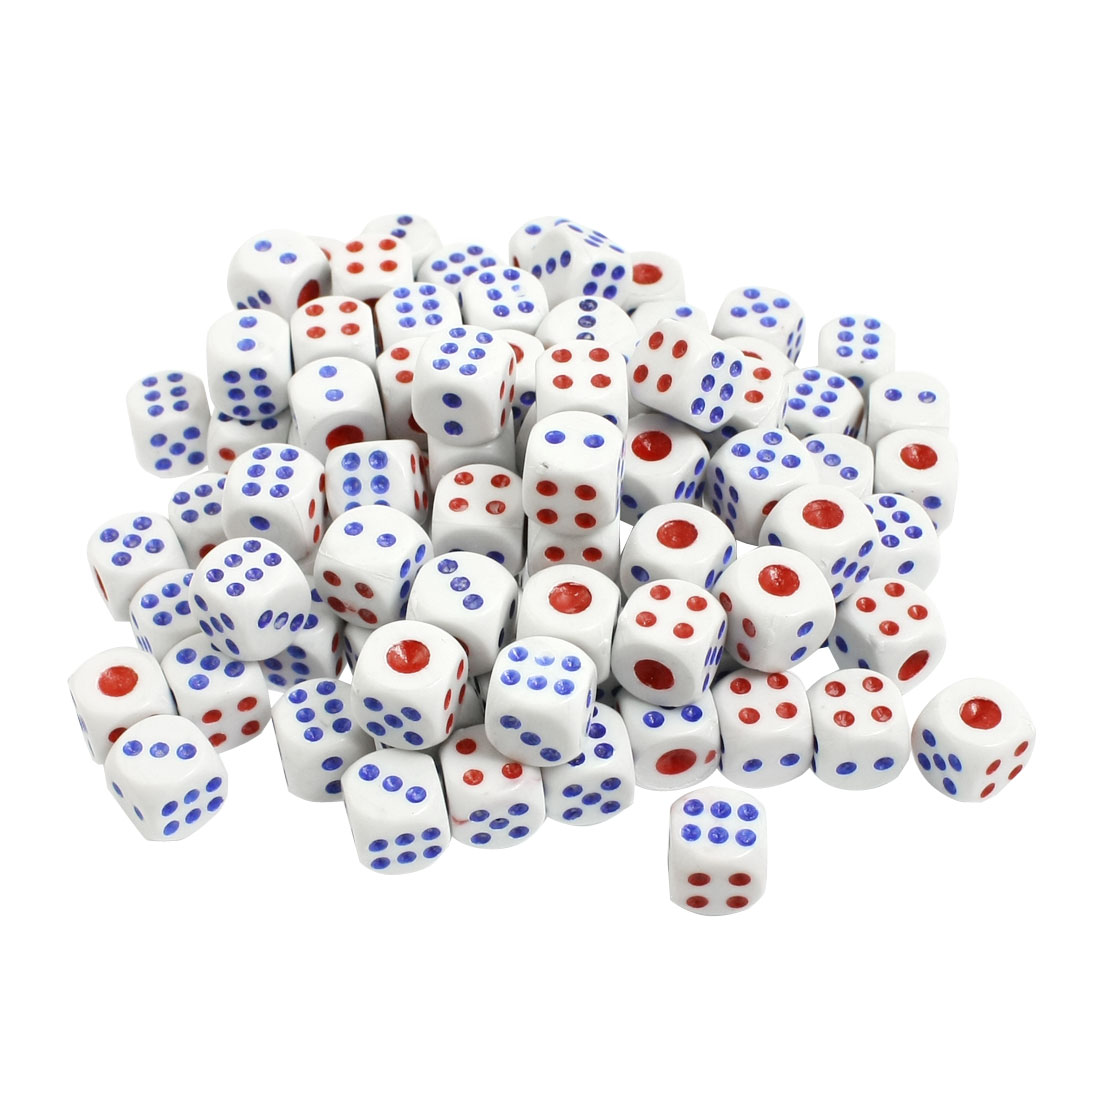 100 Pcs 13mm White Blue Red Plastic Shaking Dices Lucky Game Props New